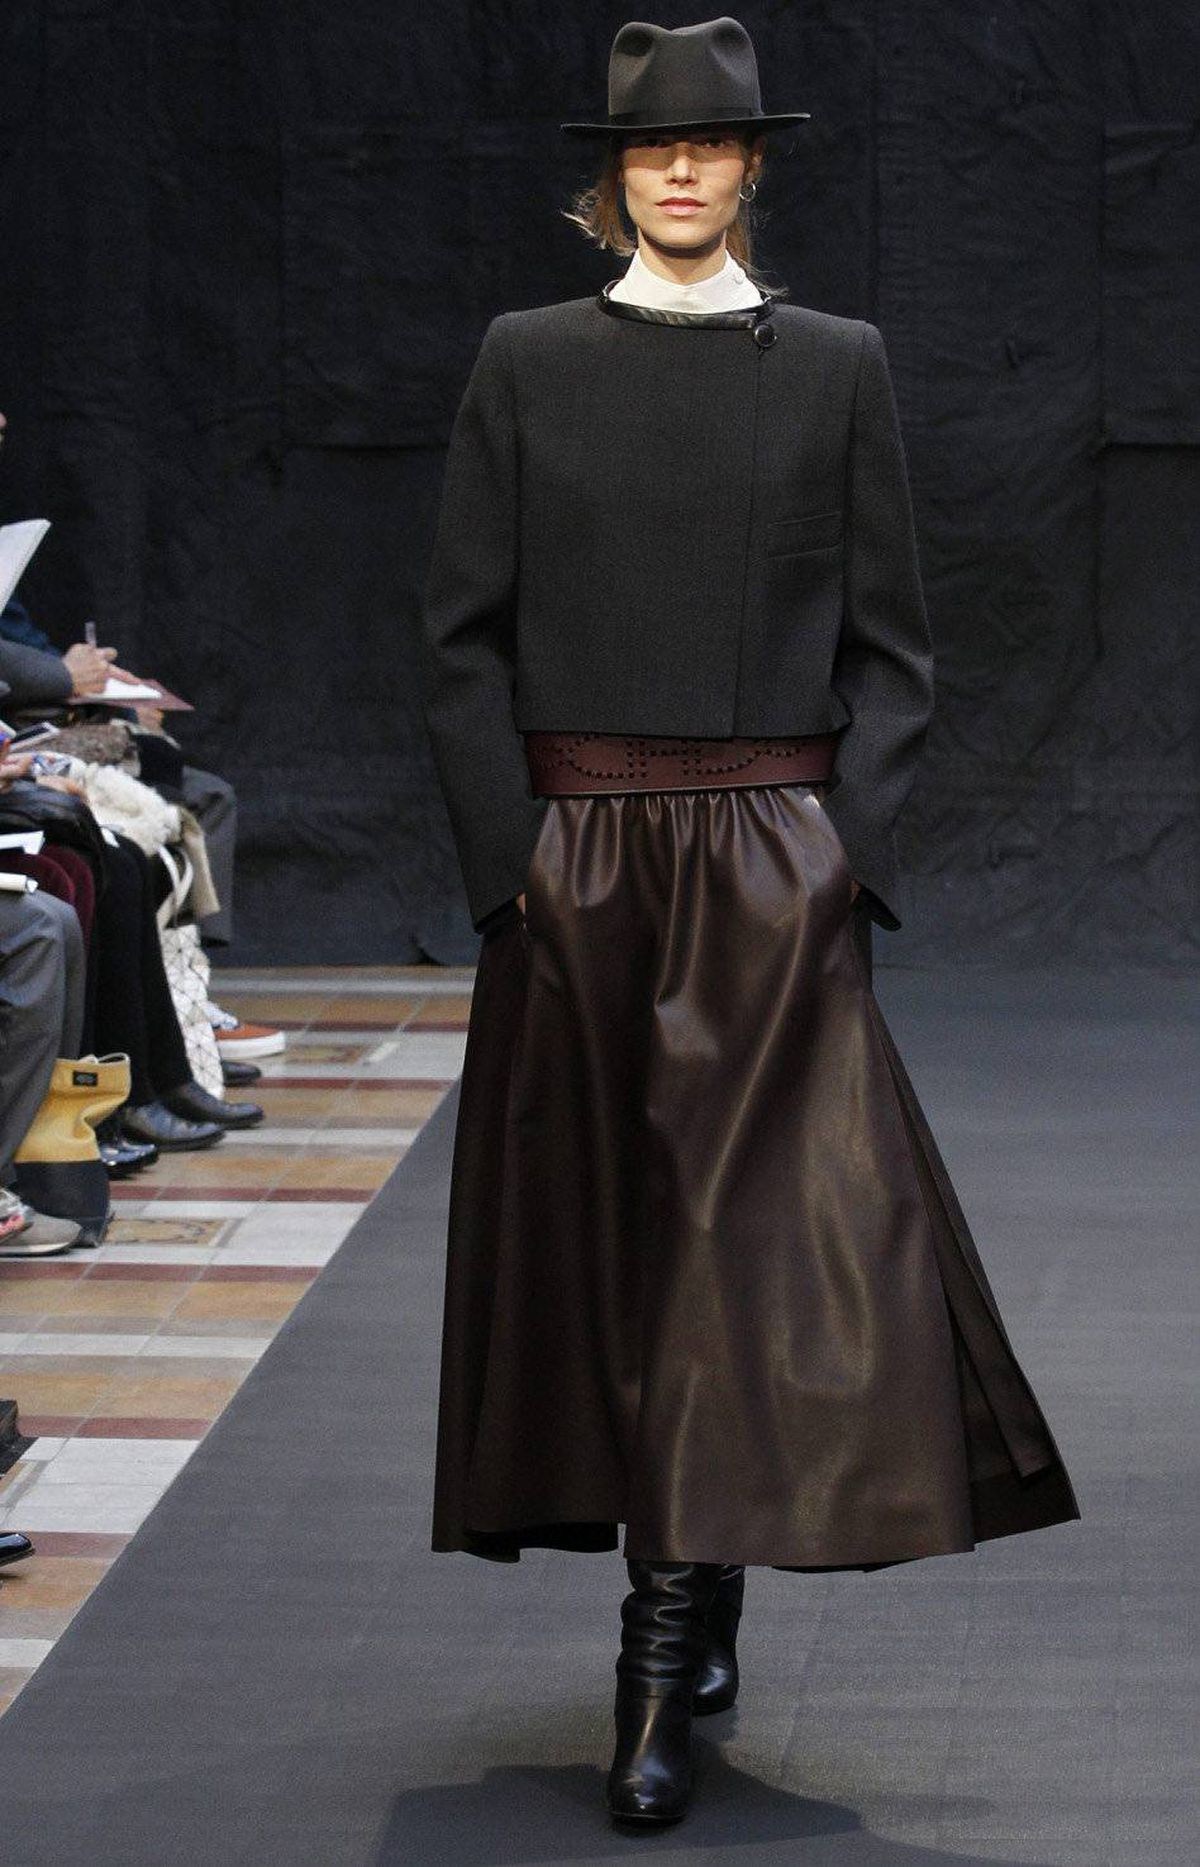 Hermès declares a theme each year. For 2012, it's The Gift of Time, which is widely open to interpretation as it relates to fashion. Then again, designer Christophe Lemaire did an excellent job of conveying timelessness. White shirts – with collars or with raised rounded necklines – appeared frequently.